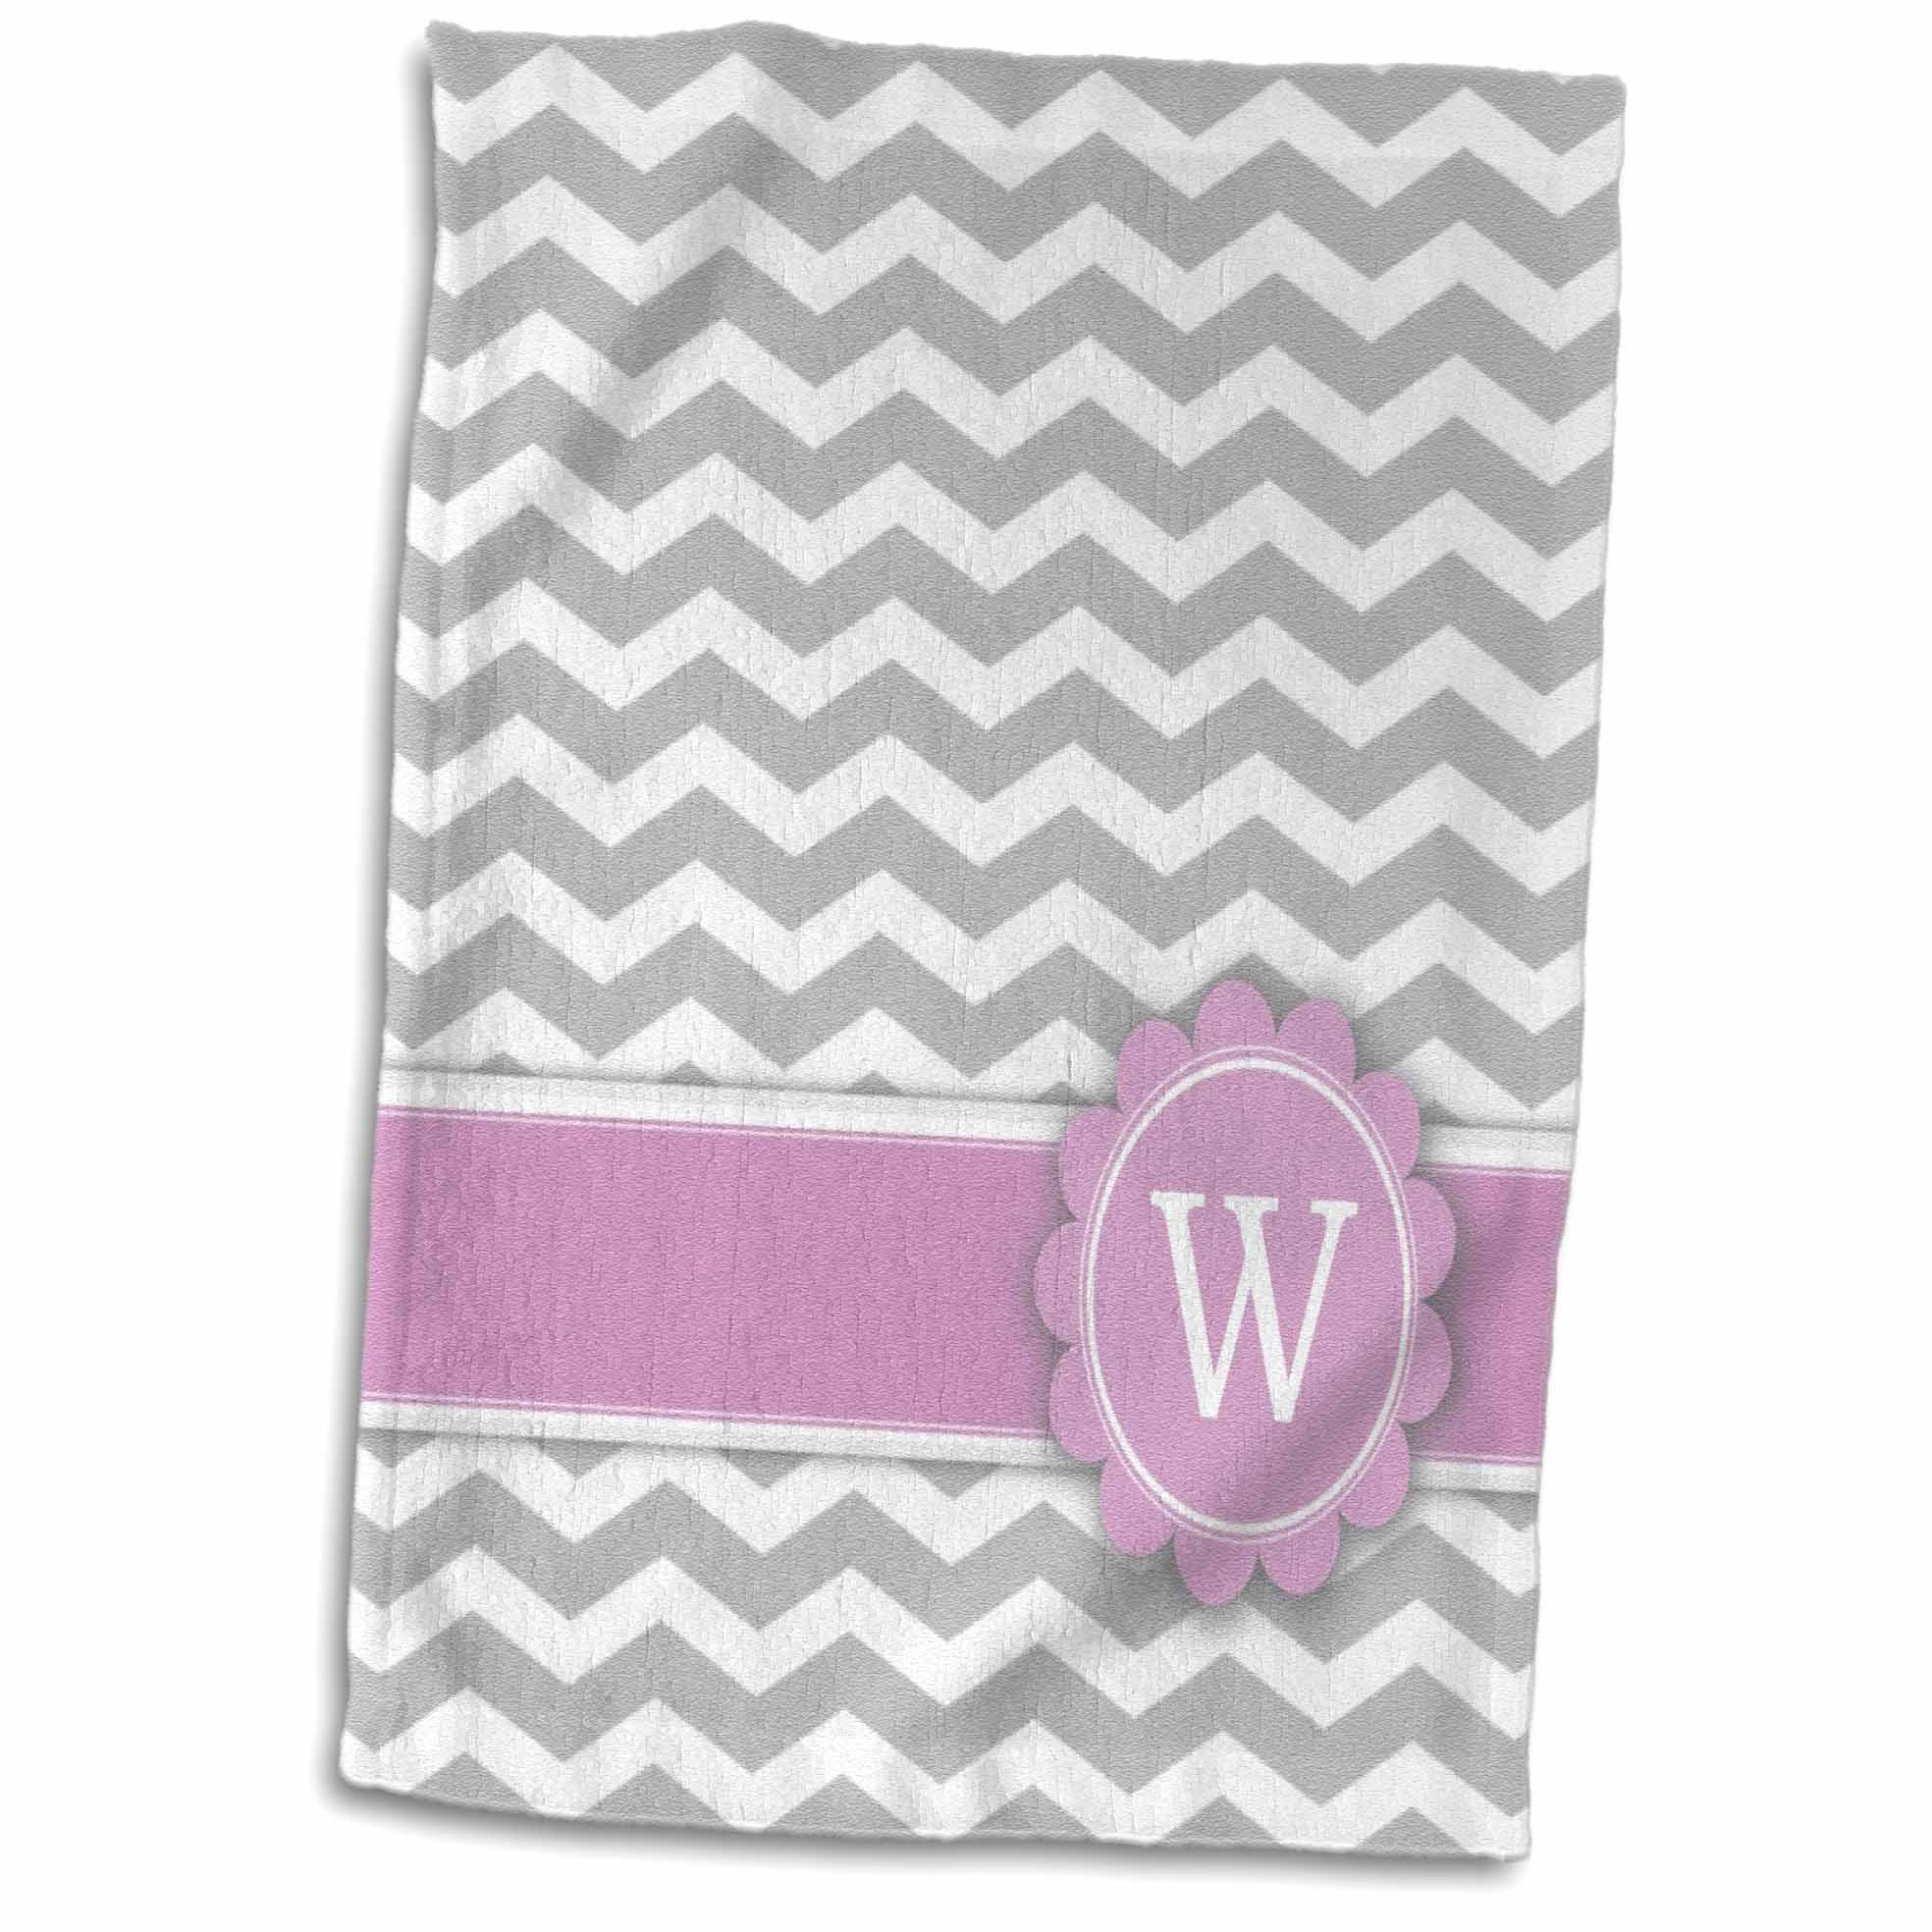 3dRose Letter W monogrammed on grey and white chevron with pink - gray zigzags - personal initial zig zags - Towel, 15 by 22-inch